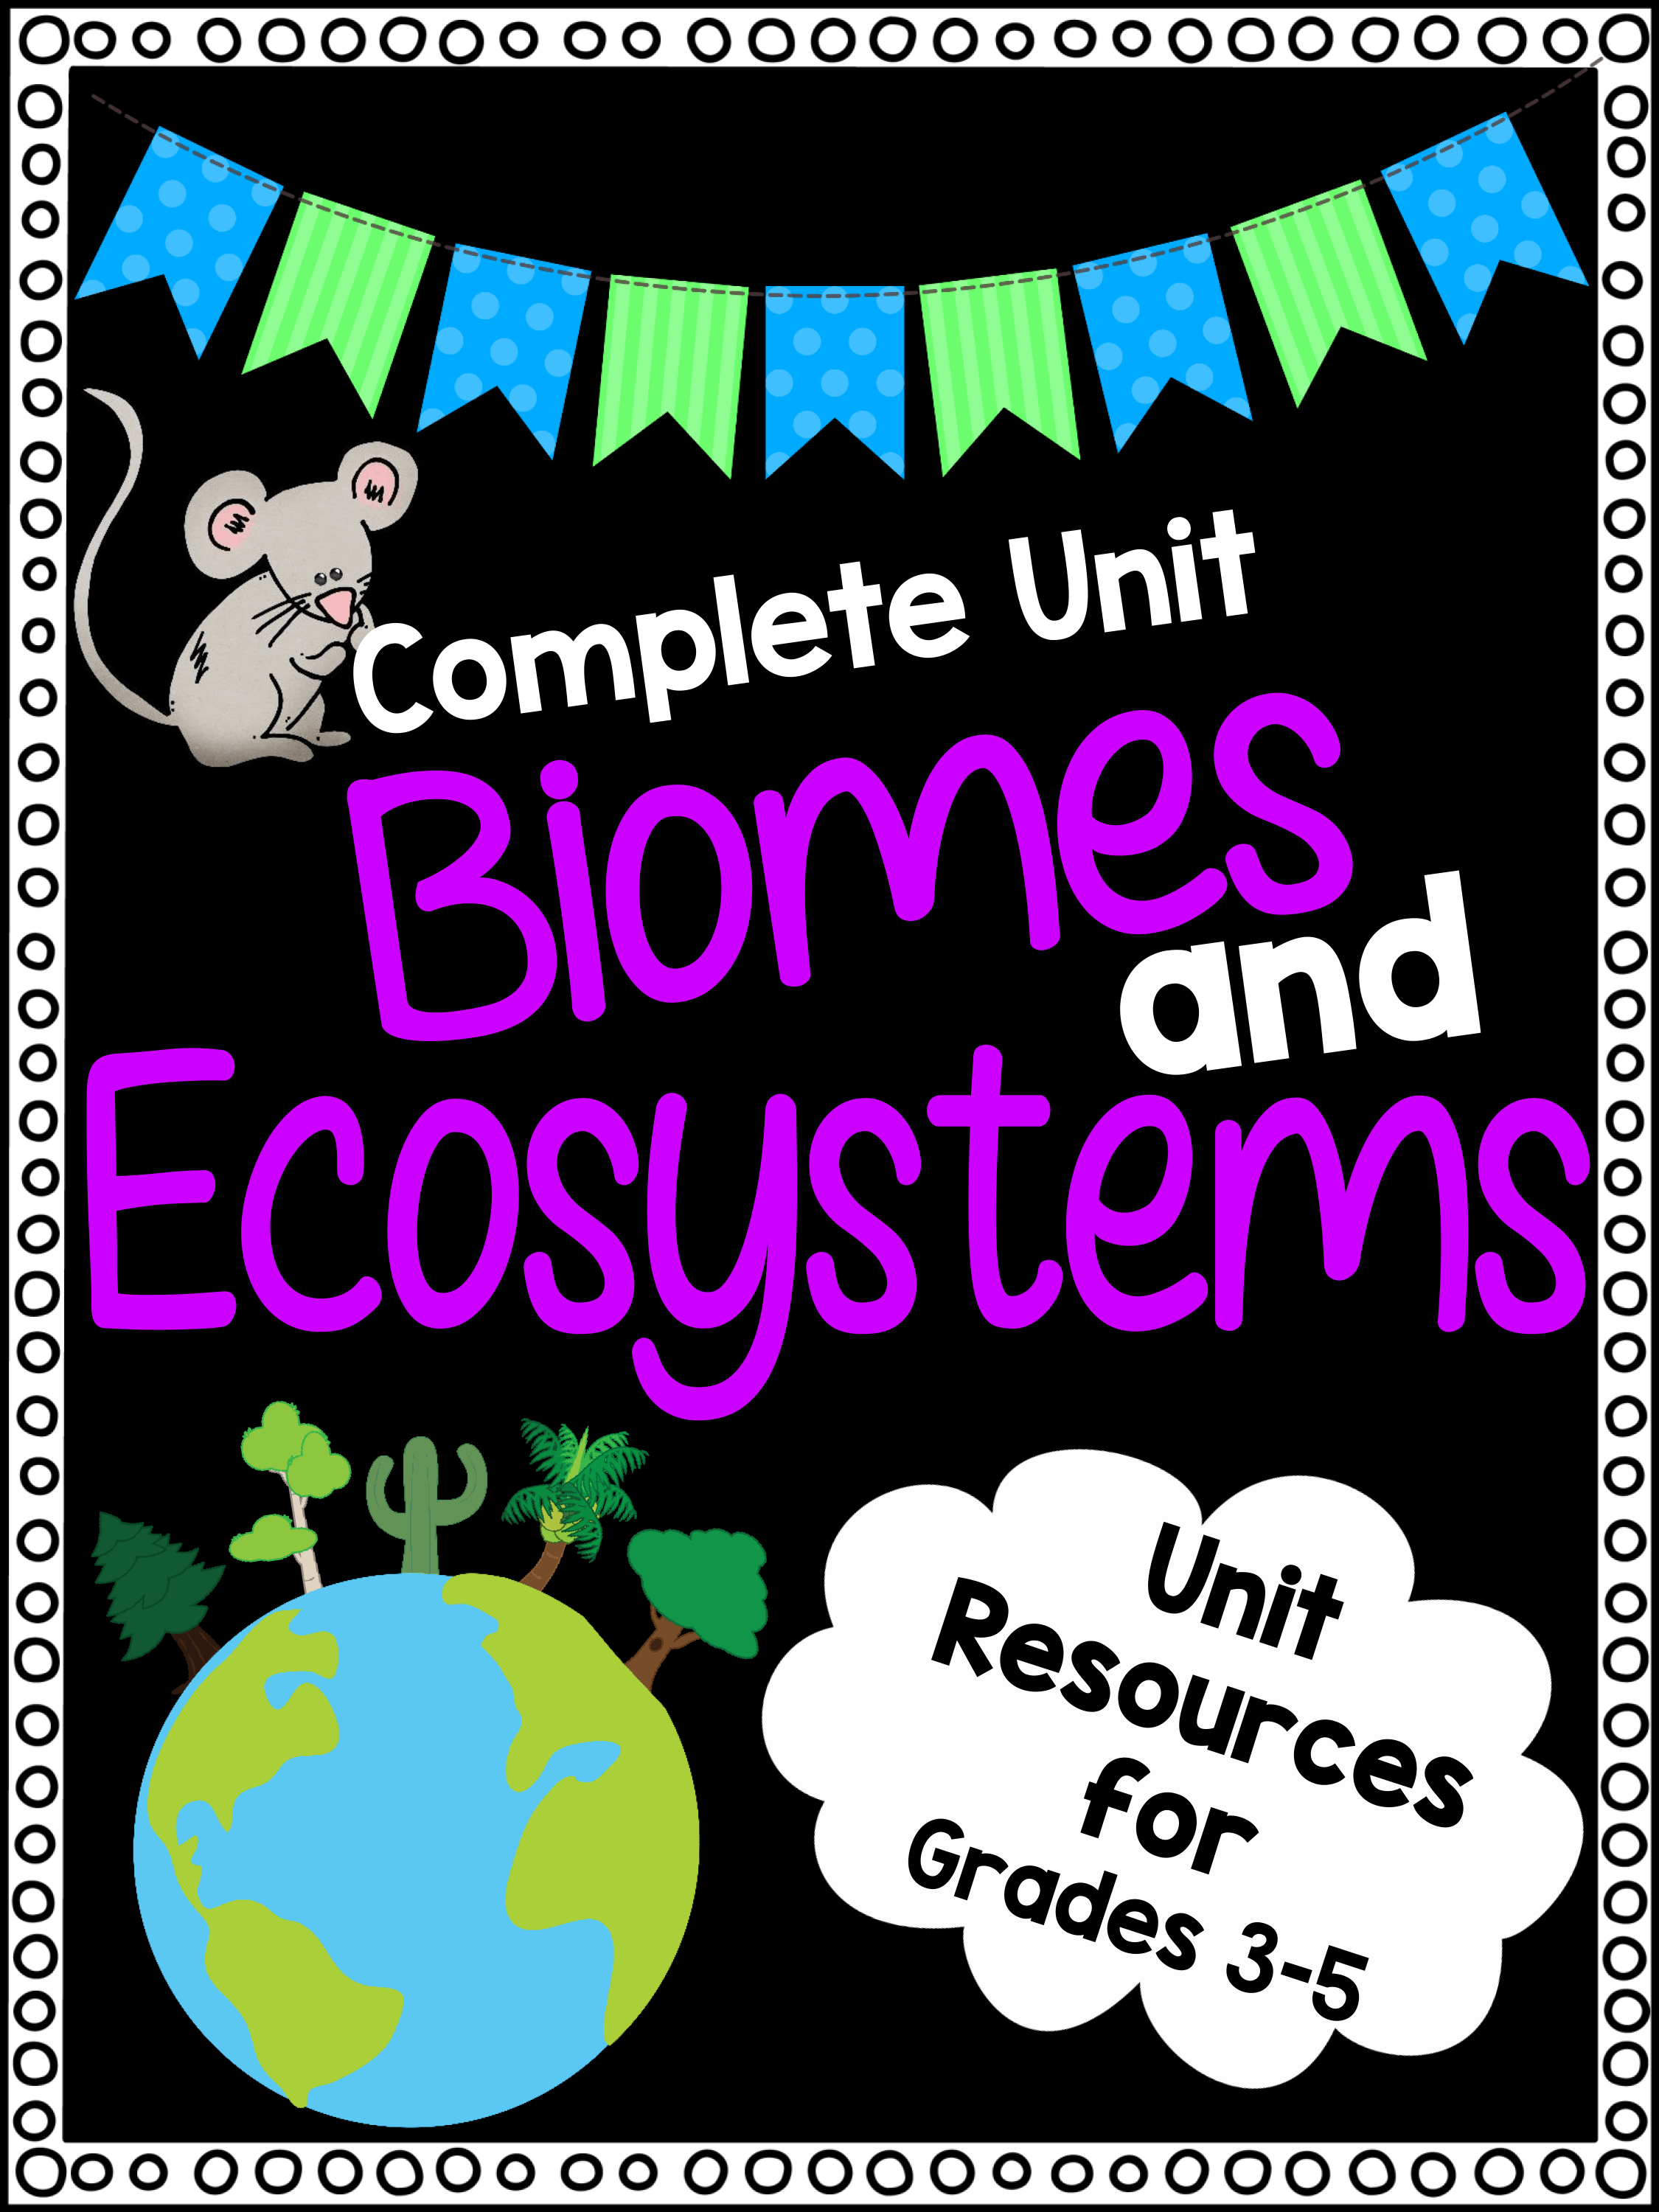 Biomes Ecosystem Worksheet Unit Plan for Teachers – Biomes of the World Worksheet